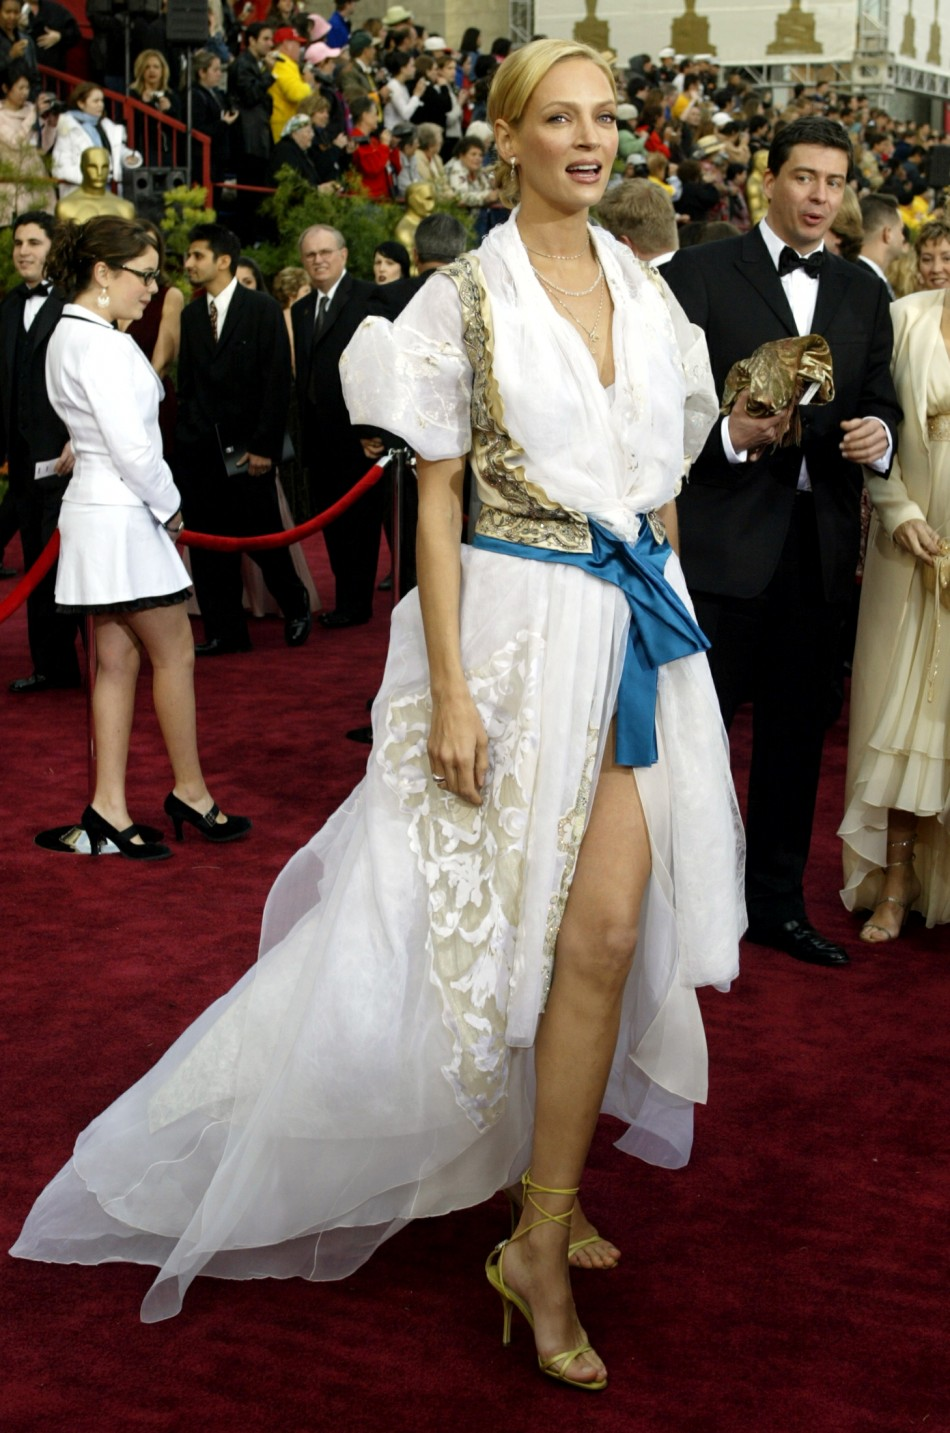 Actress Uma Thurman arrives for the 76th annual Academy Awards at the Kodak Theatre in Hollywood,